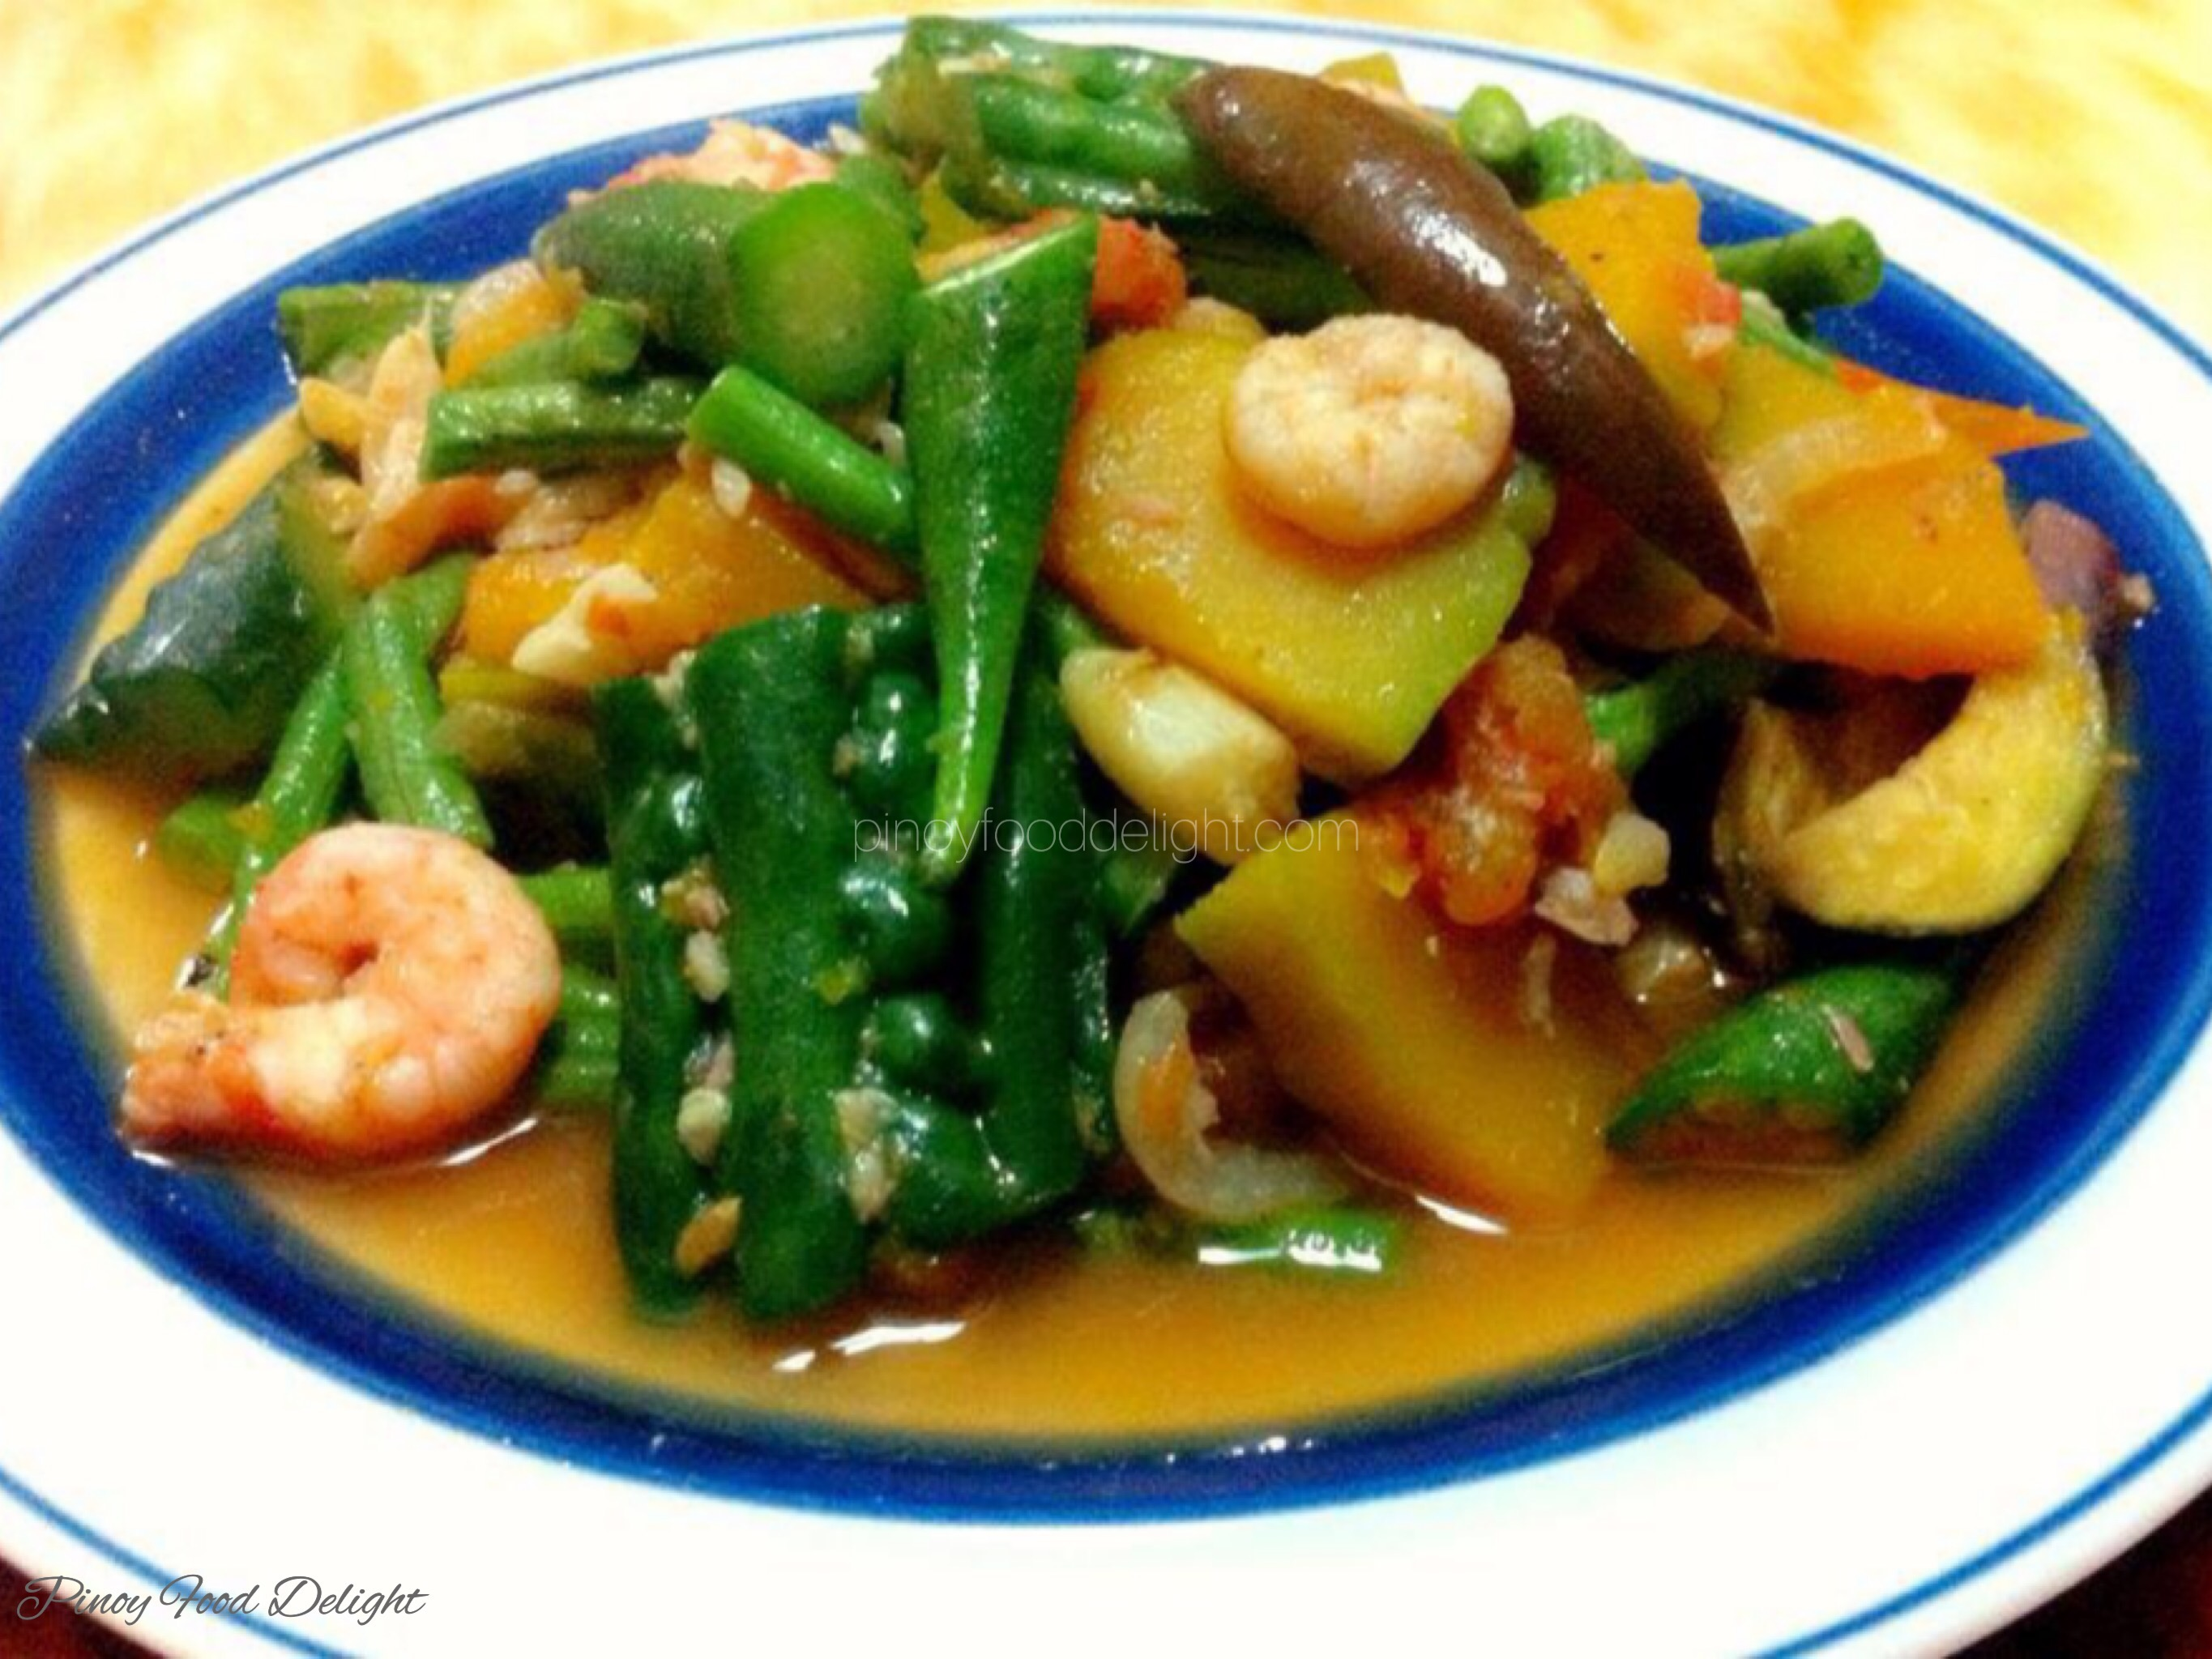 Pinakbet Pinoy Food Delight